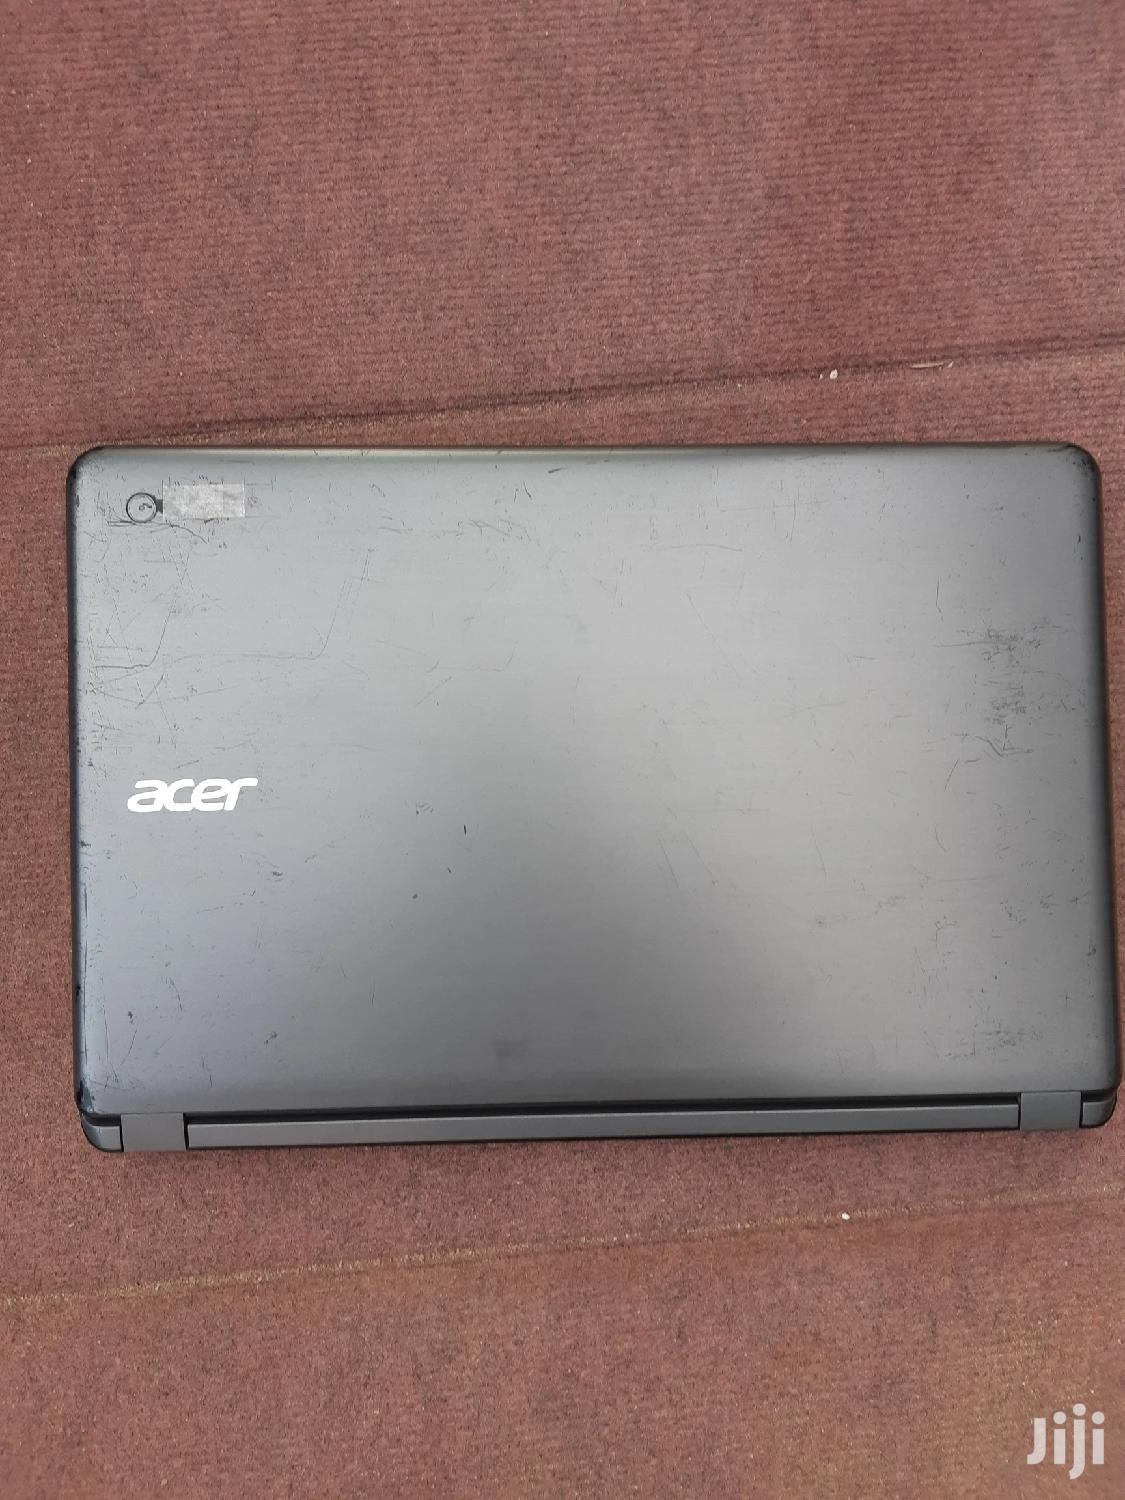 Archive: Laptop Acer Chromebook 15 CB315 4GB Intel SSD 32GB